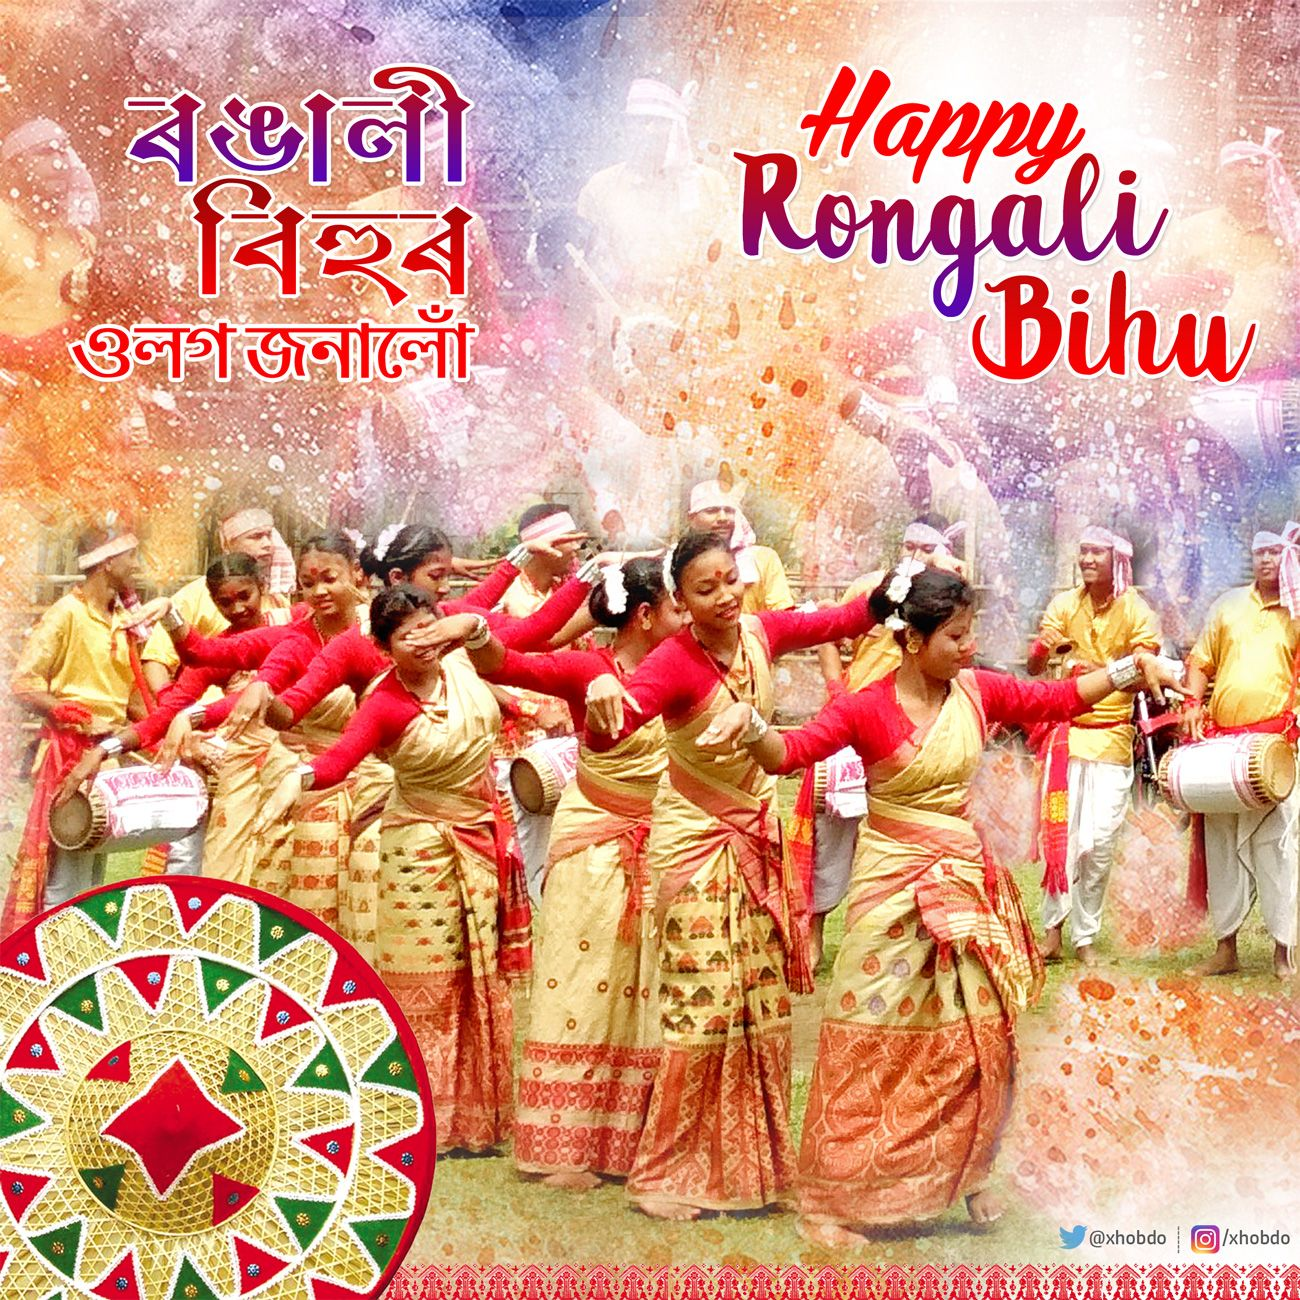 Happy Rongali Bihu 8th Of March The 5th Of November On October 3rd